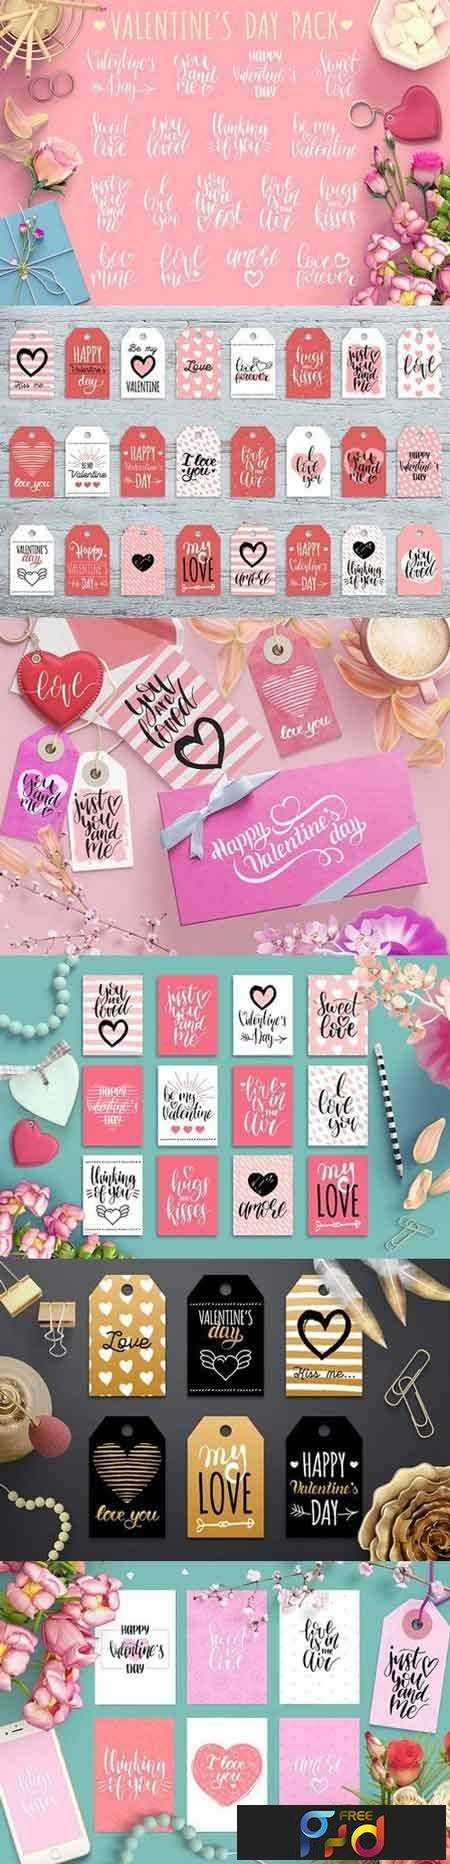 FreePsdVn.com_1702366_PRINT TEMPLATE_valentine_day_lettering_and_cards_1189564